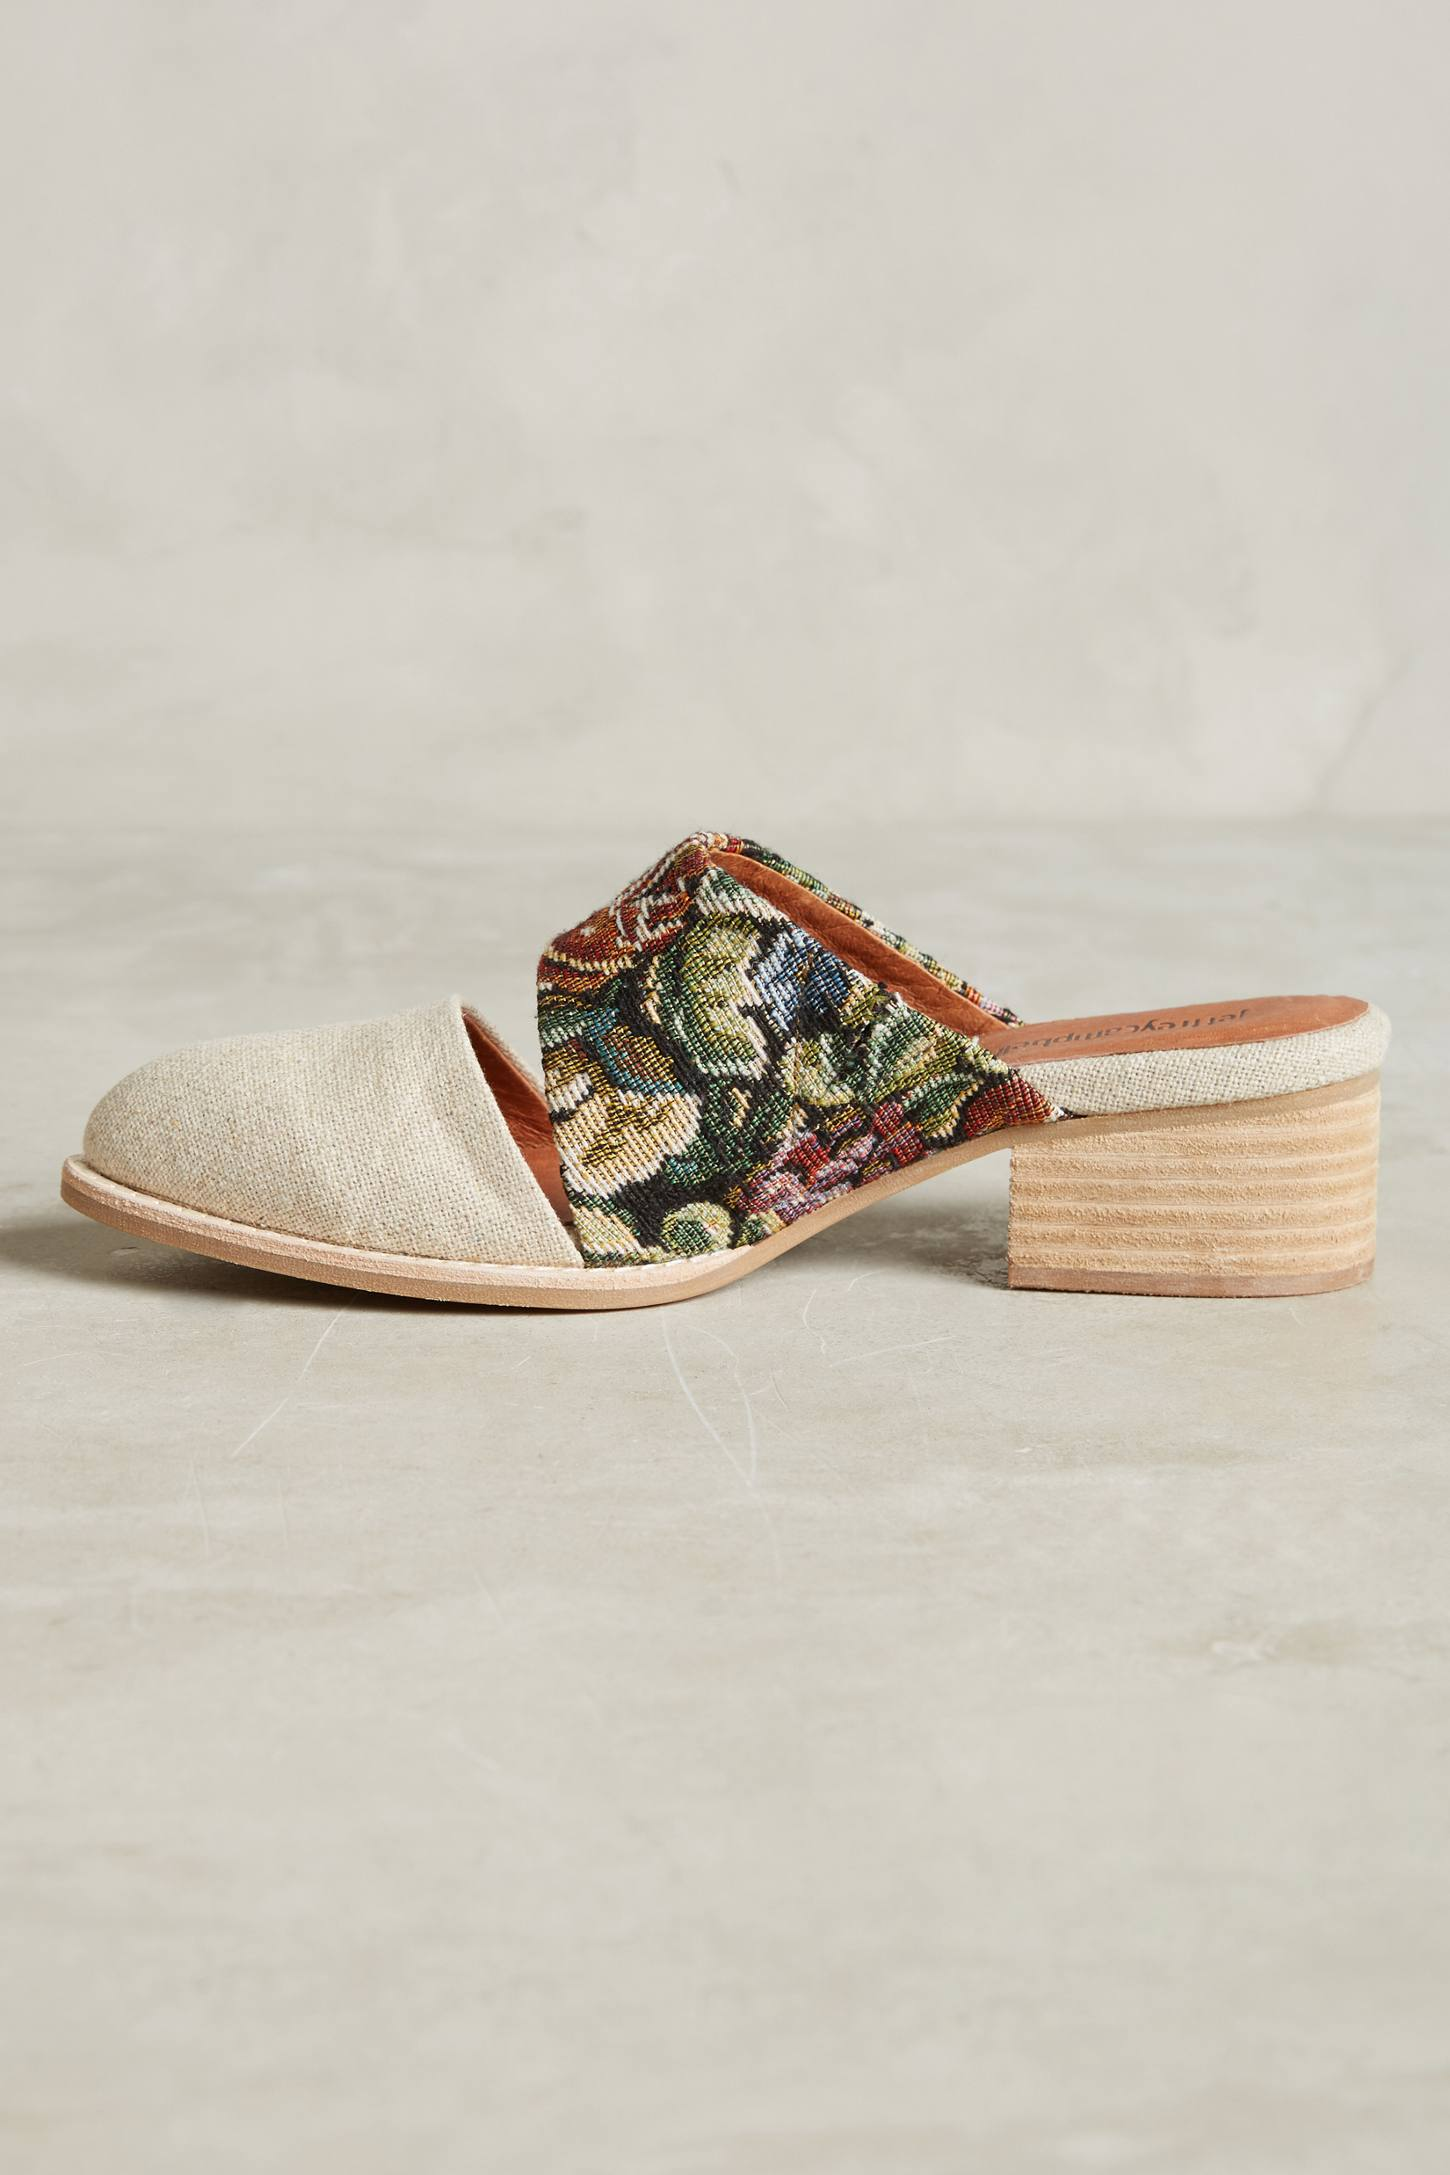 Slide View: 5: Jeffrey Campbell Tapestry Mules